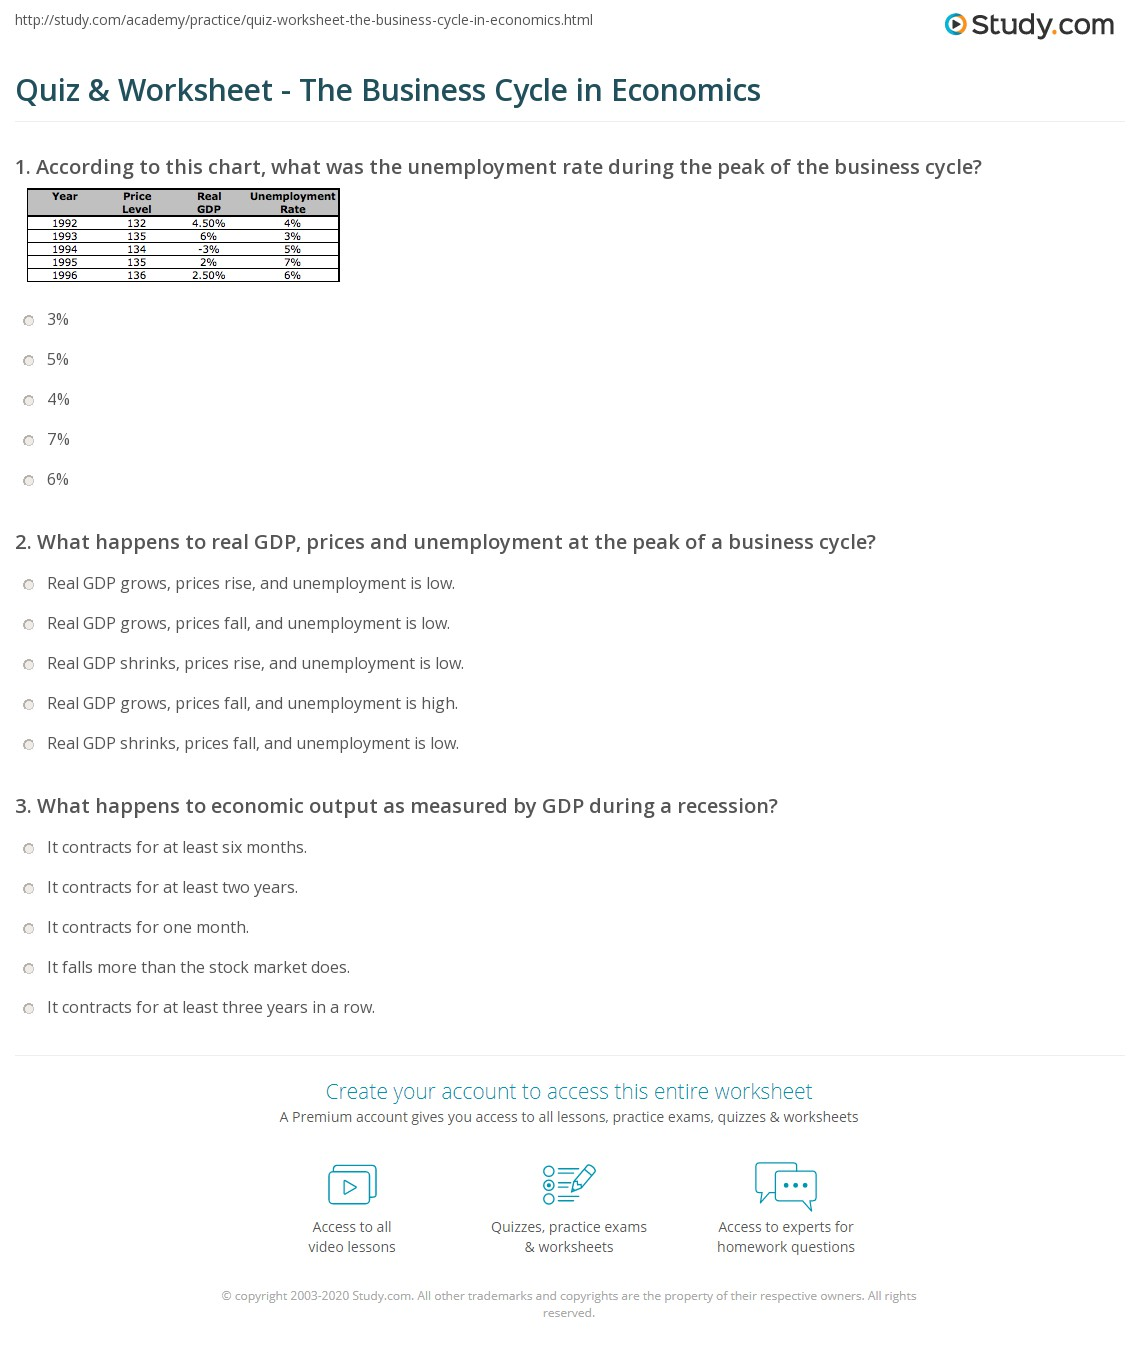 Quiz & Worksheet The Business Cycle in Economics